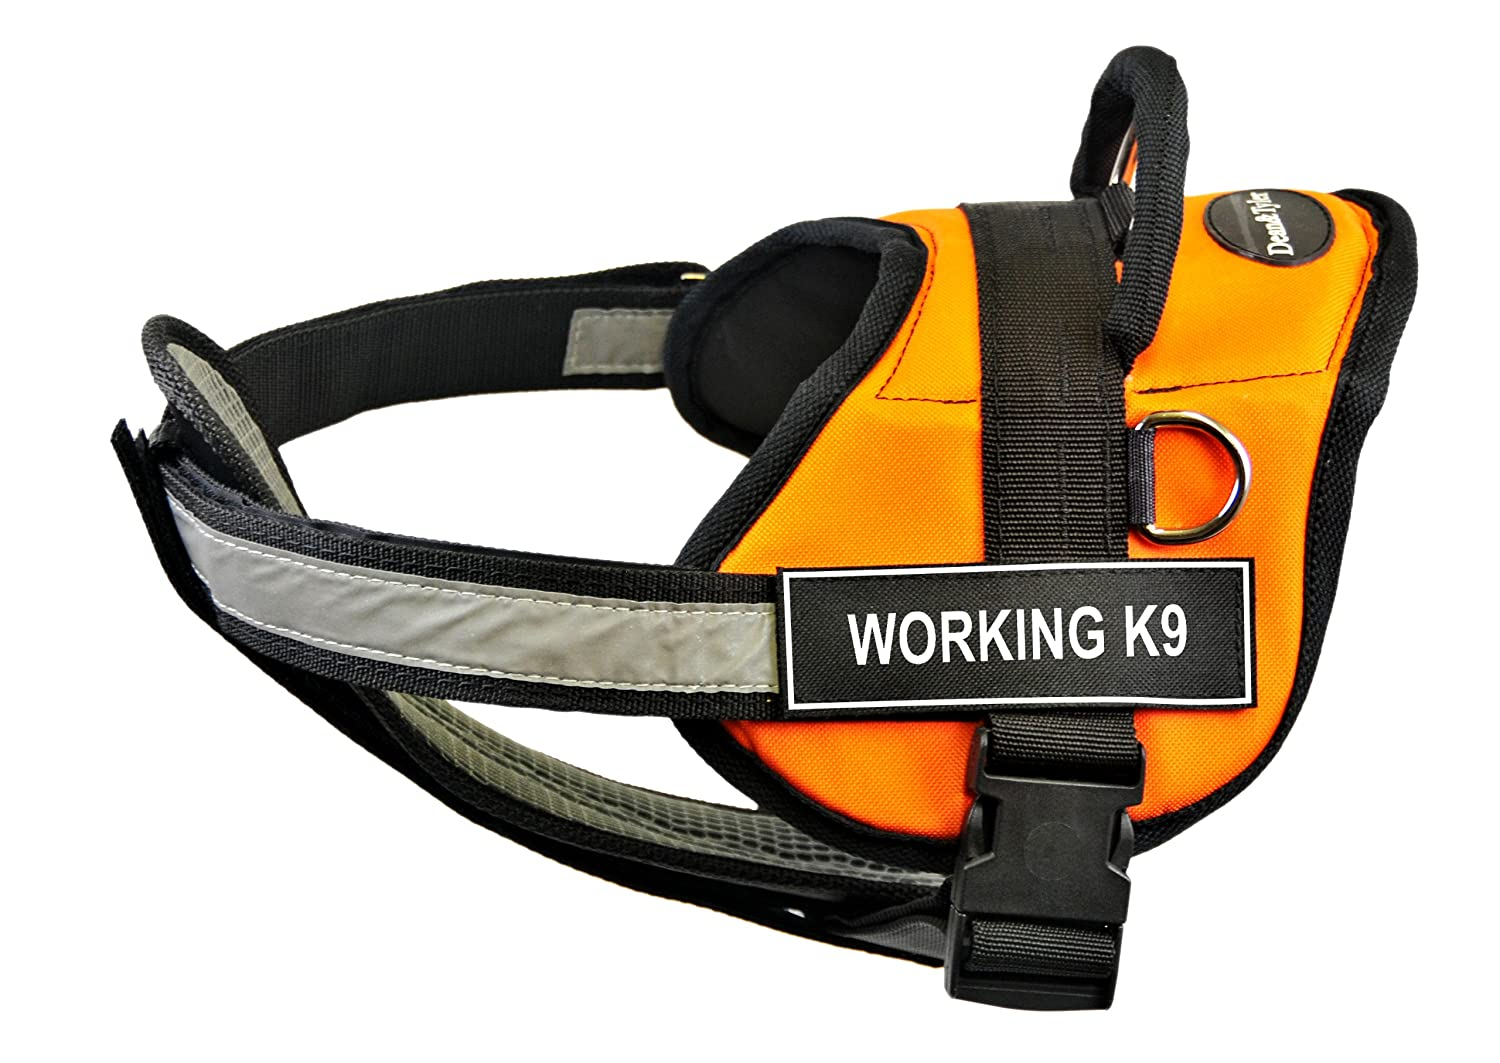 Dean & Tyler 25-Inch to 34-Inch Working K9 Dog Harness with Padded Reflective Chest Straps, Small, orange Black